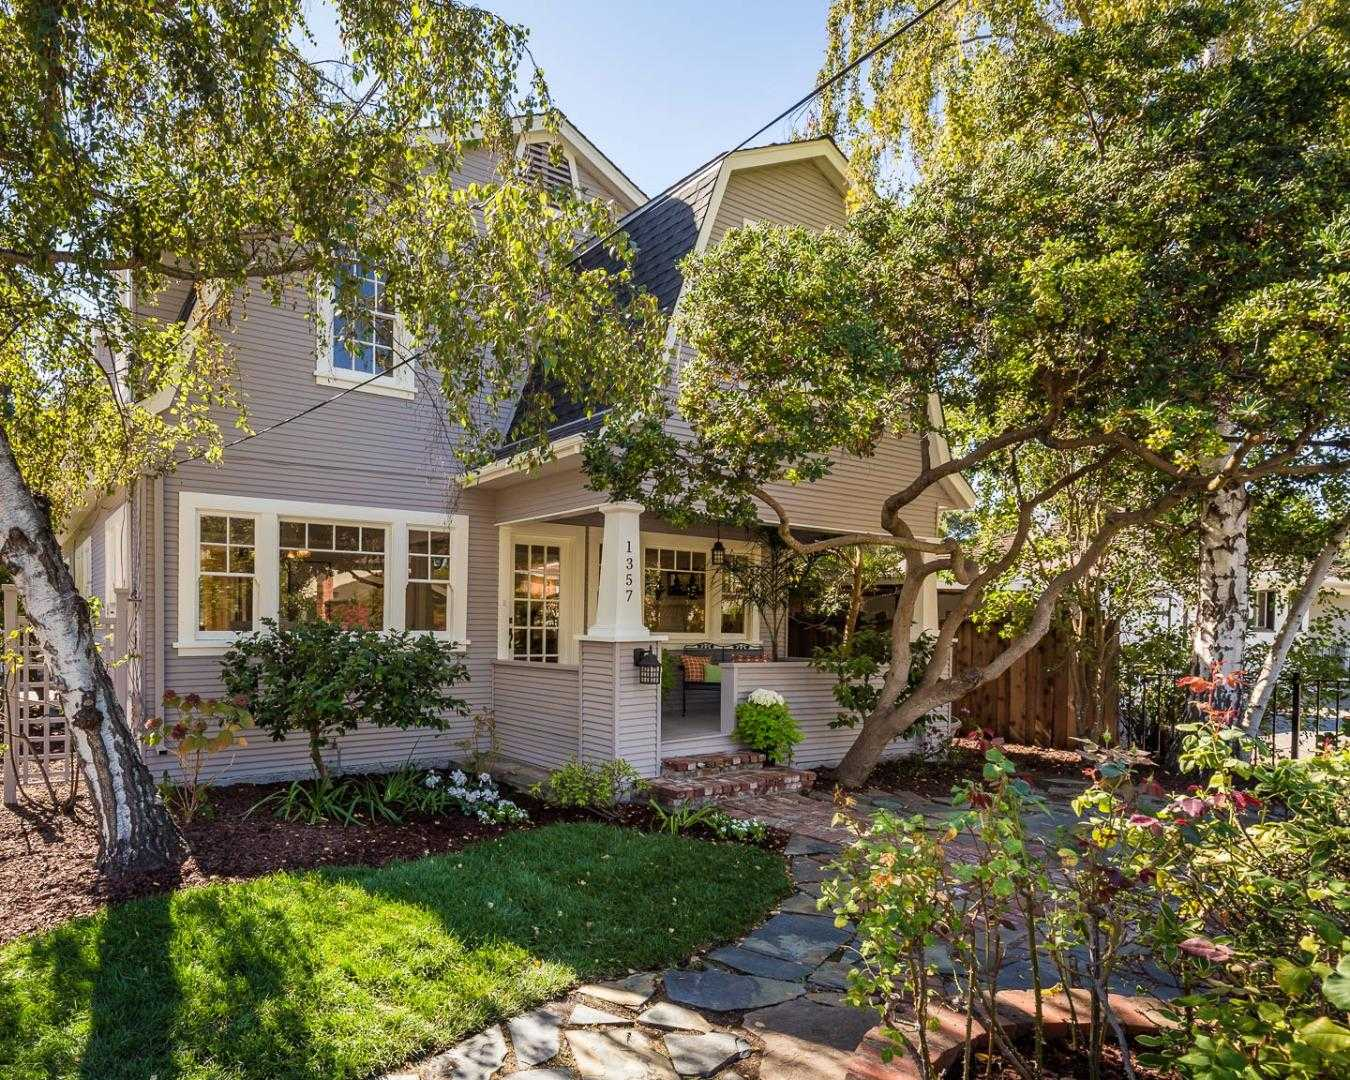 $2,575,000 - 4Br/3Ba -  for Sale in Menlo Park